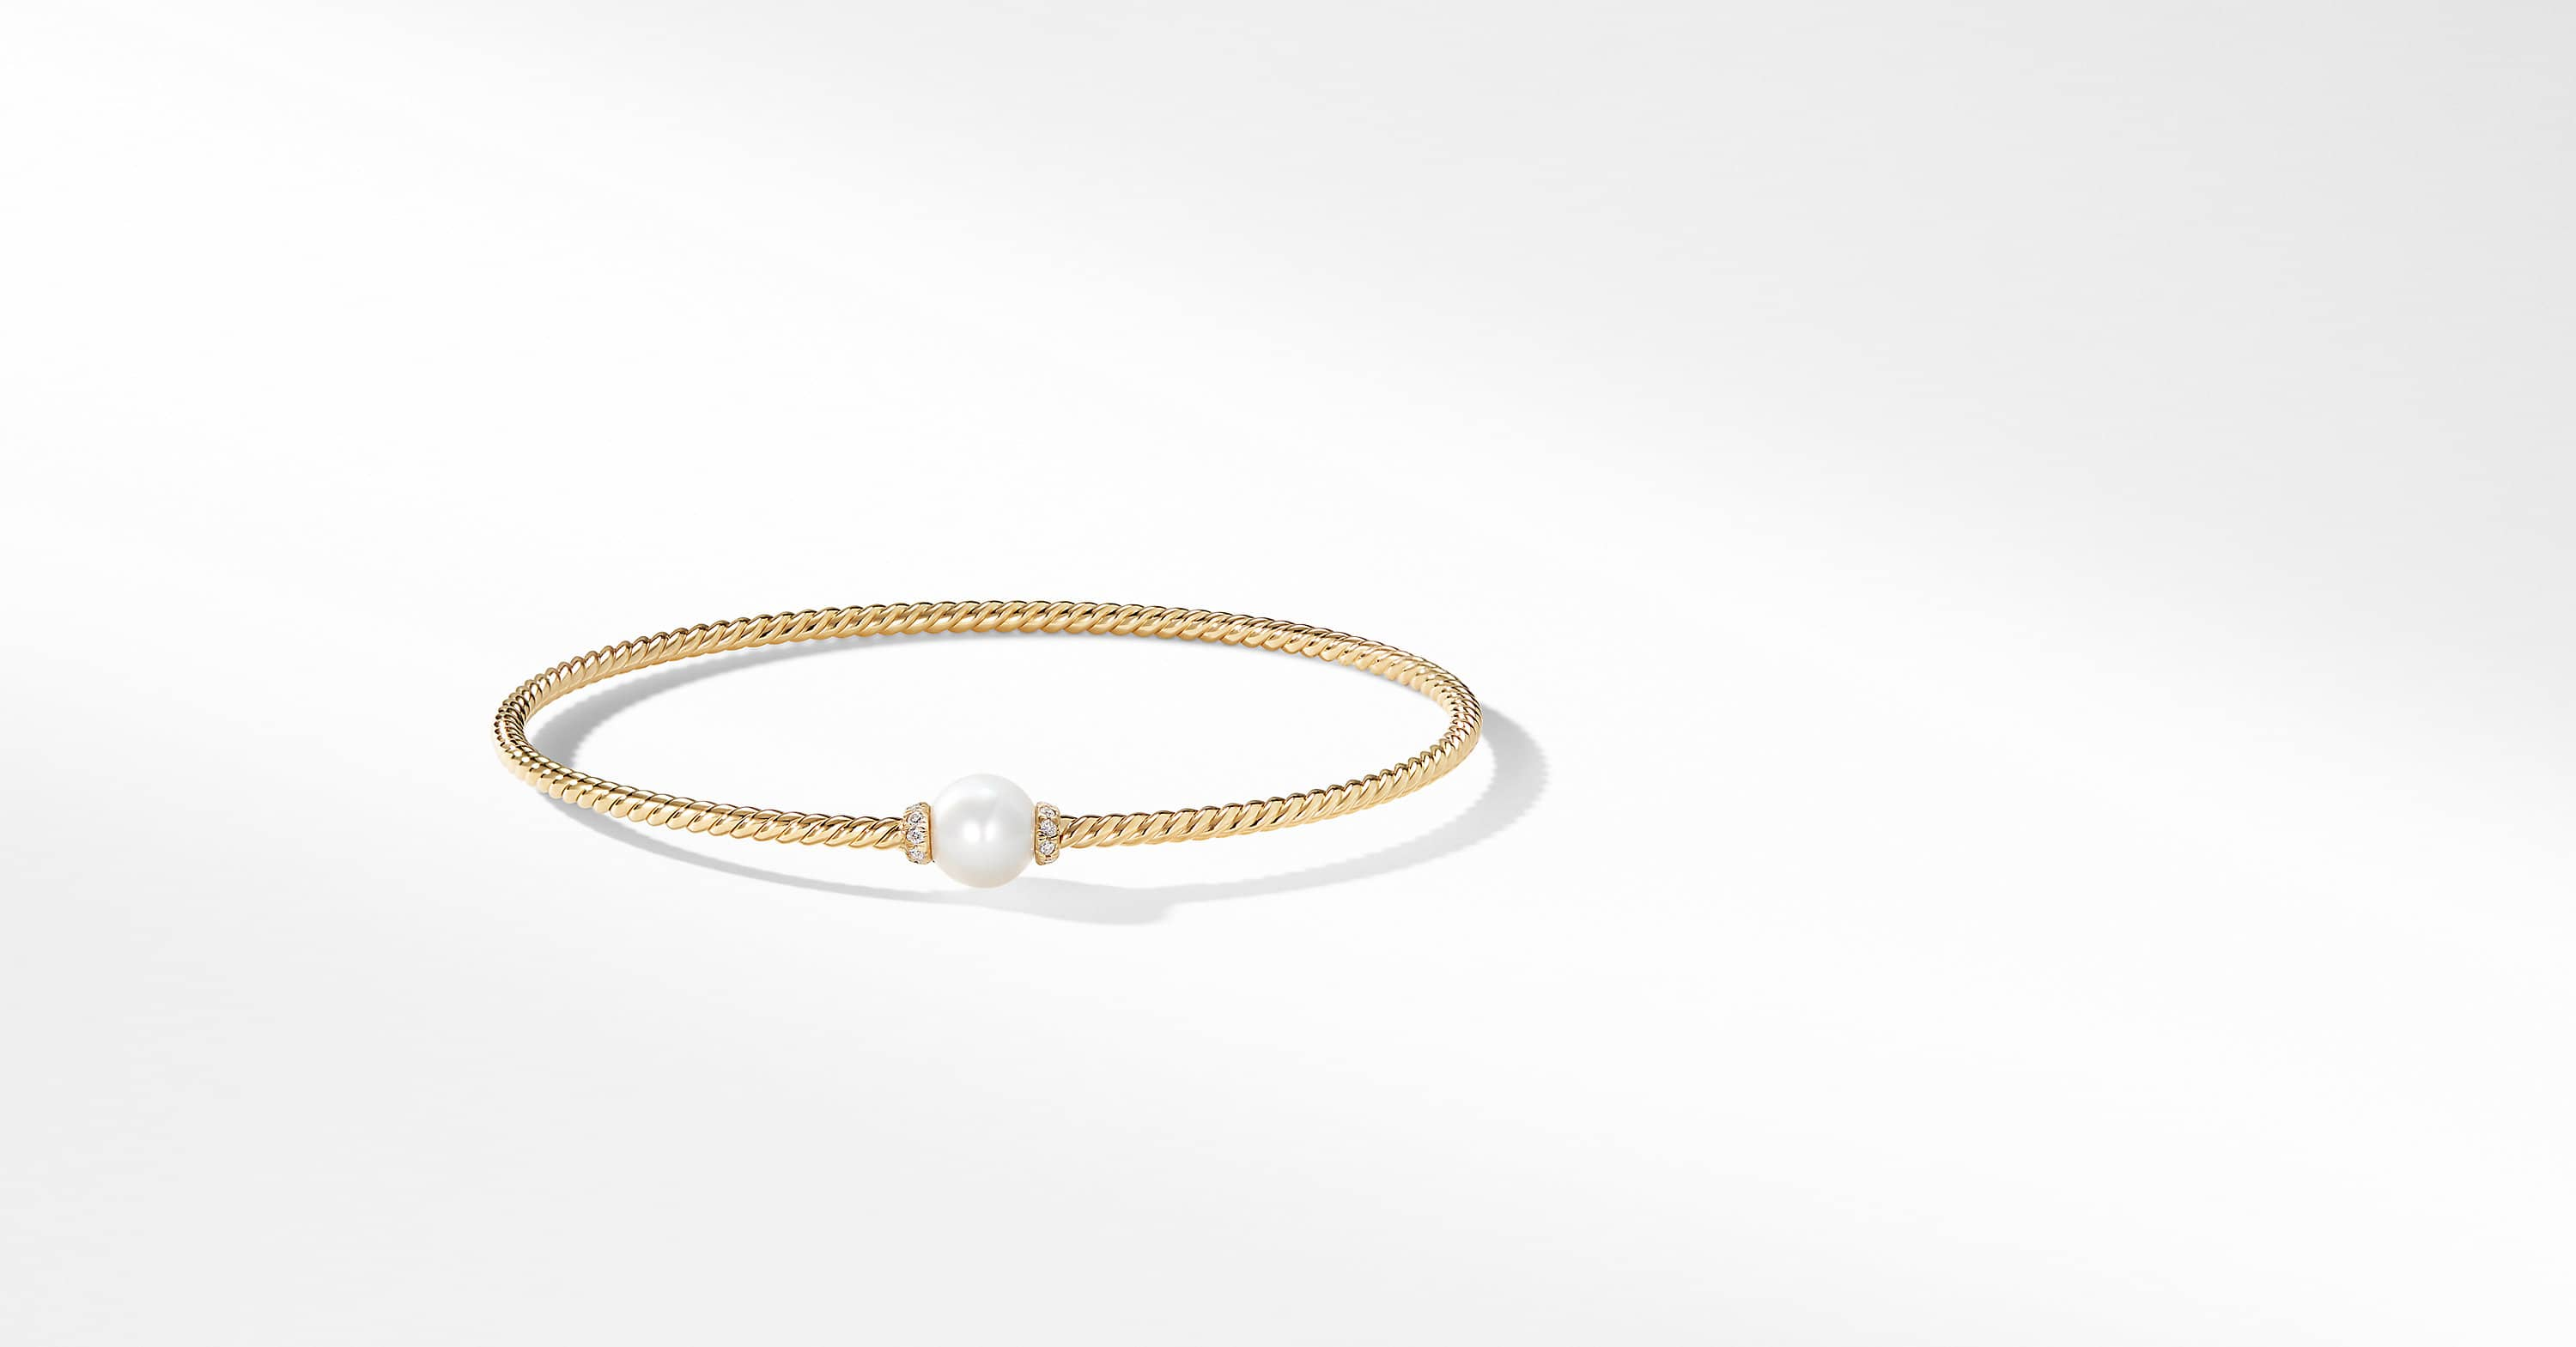 Petite Solari Station Bracelet with Cultured Pearl and Diamonds in 18K Gold